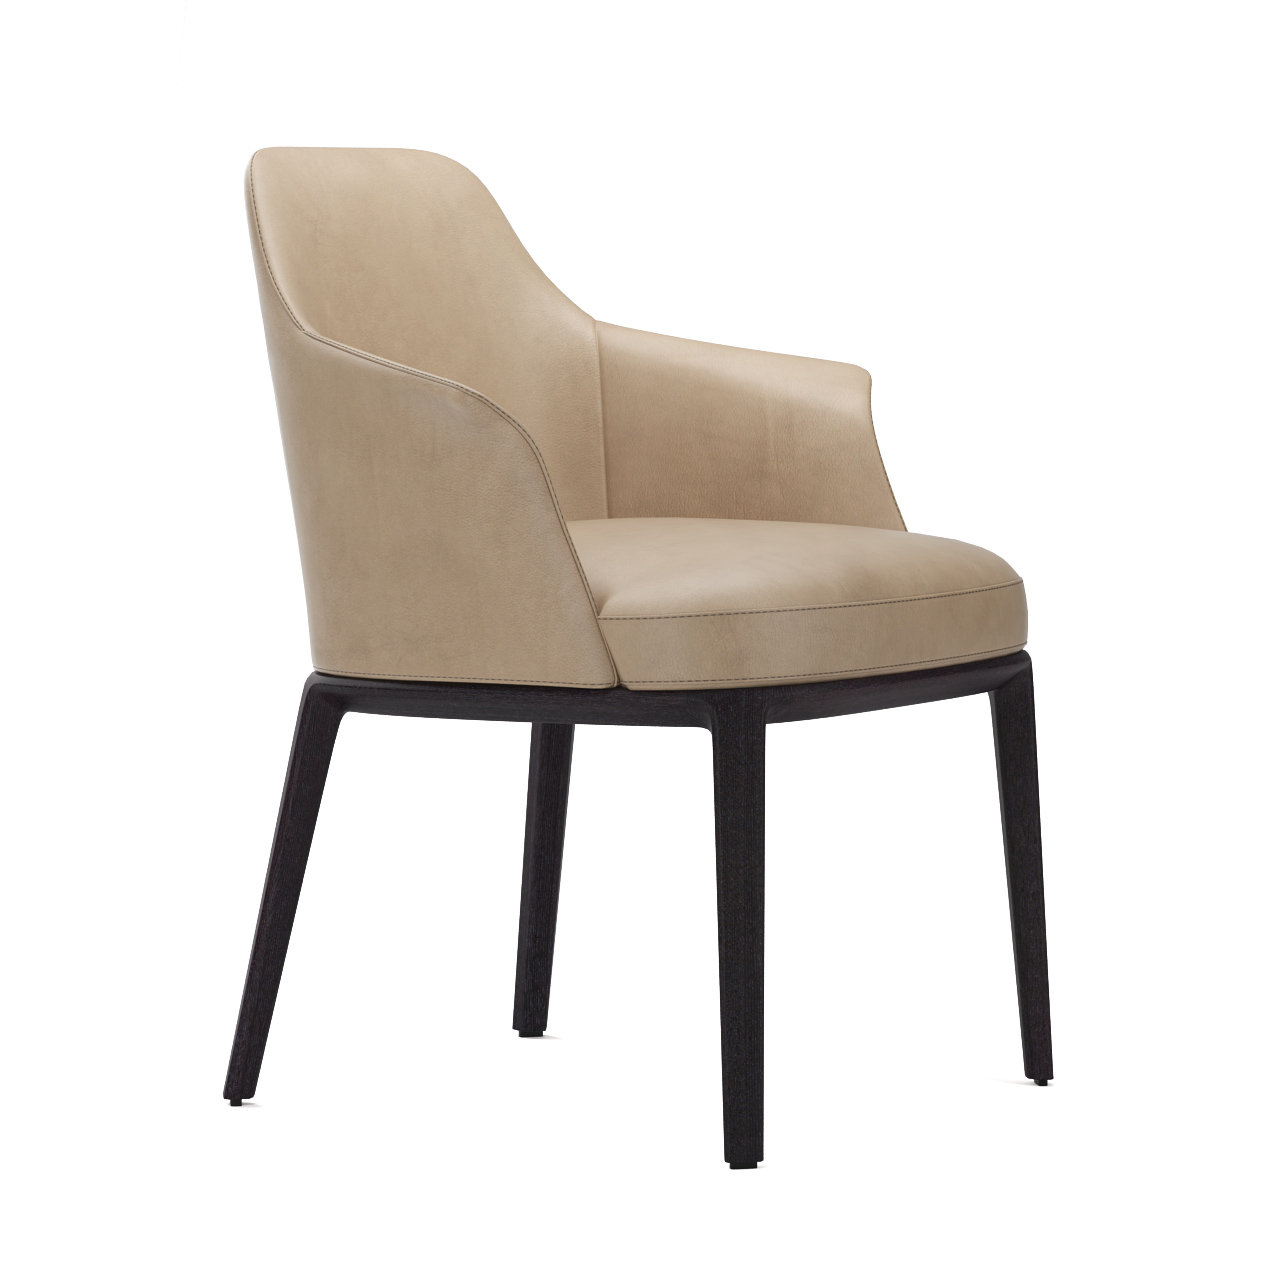 Sophie Armchair by Poliform